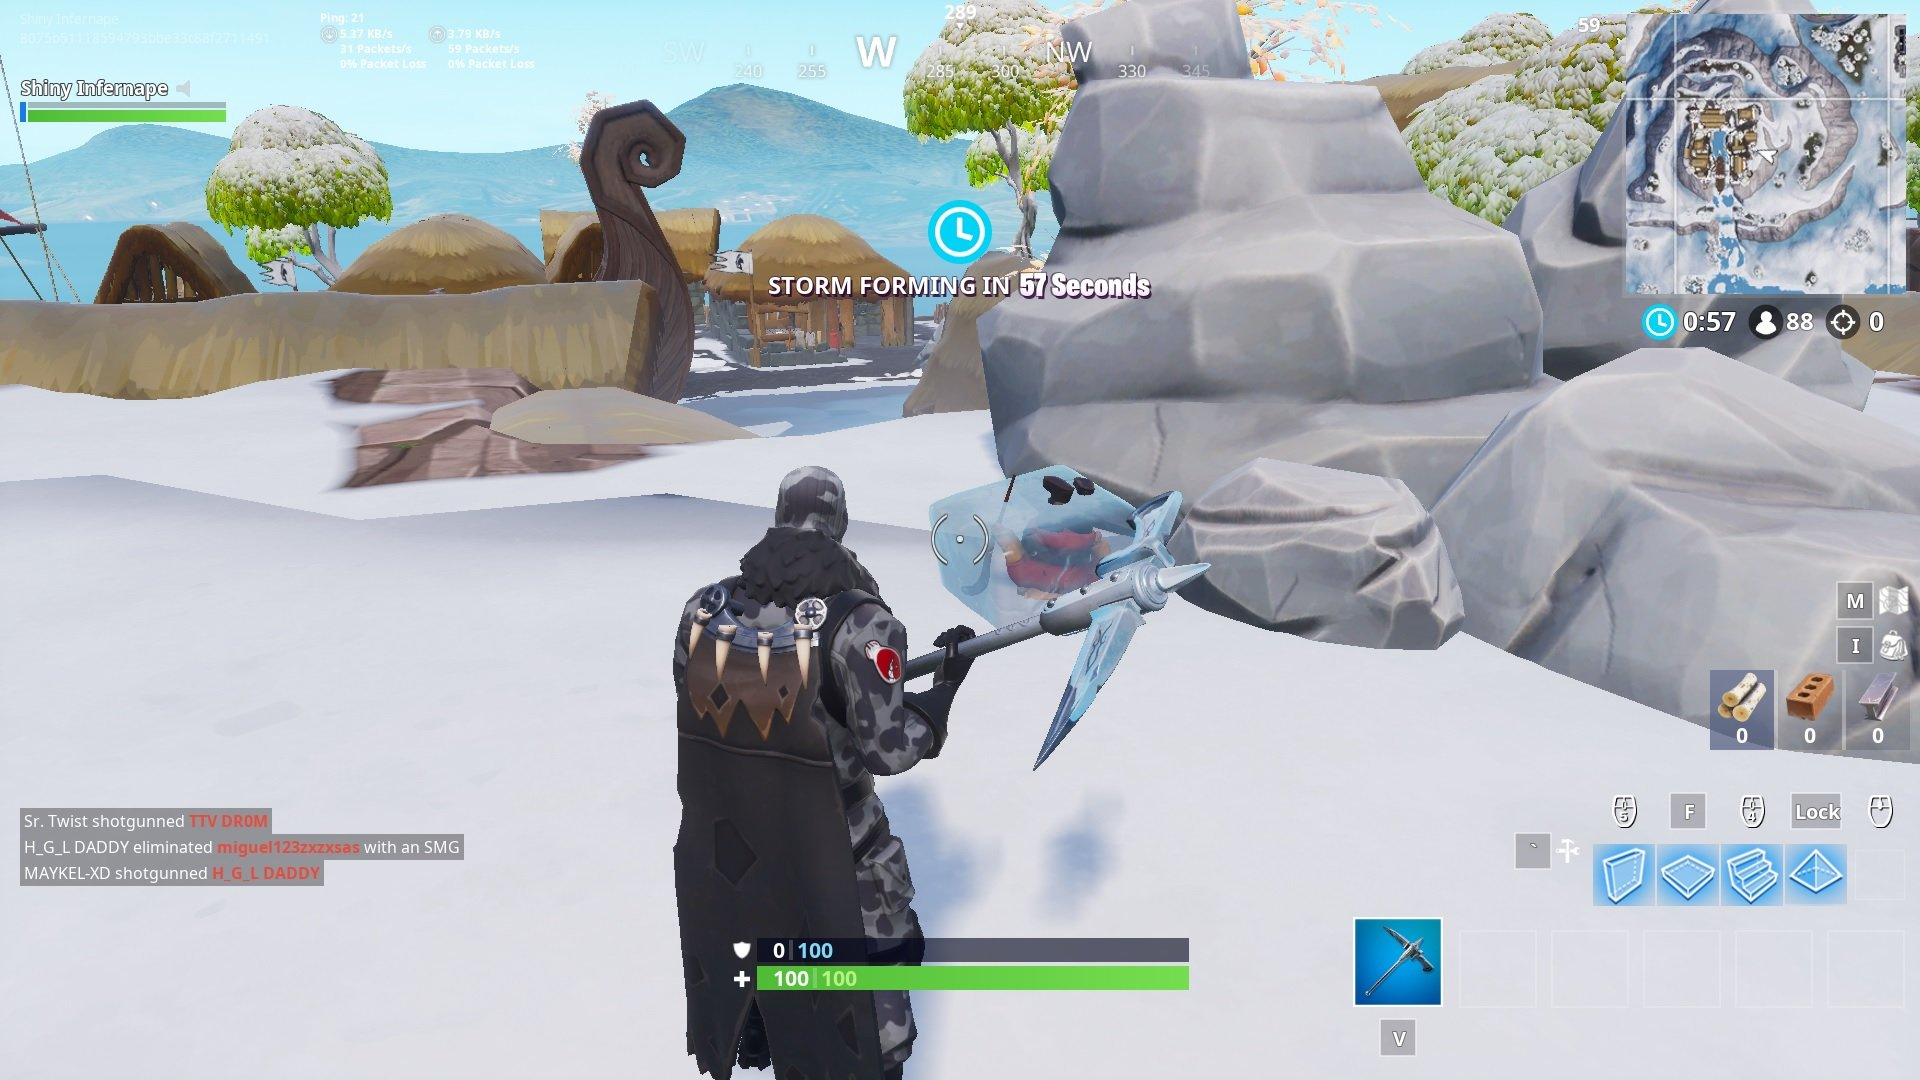 Where To Search Chilly Gnomes In Fortnite Season 7 Shacknews